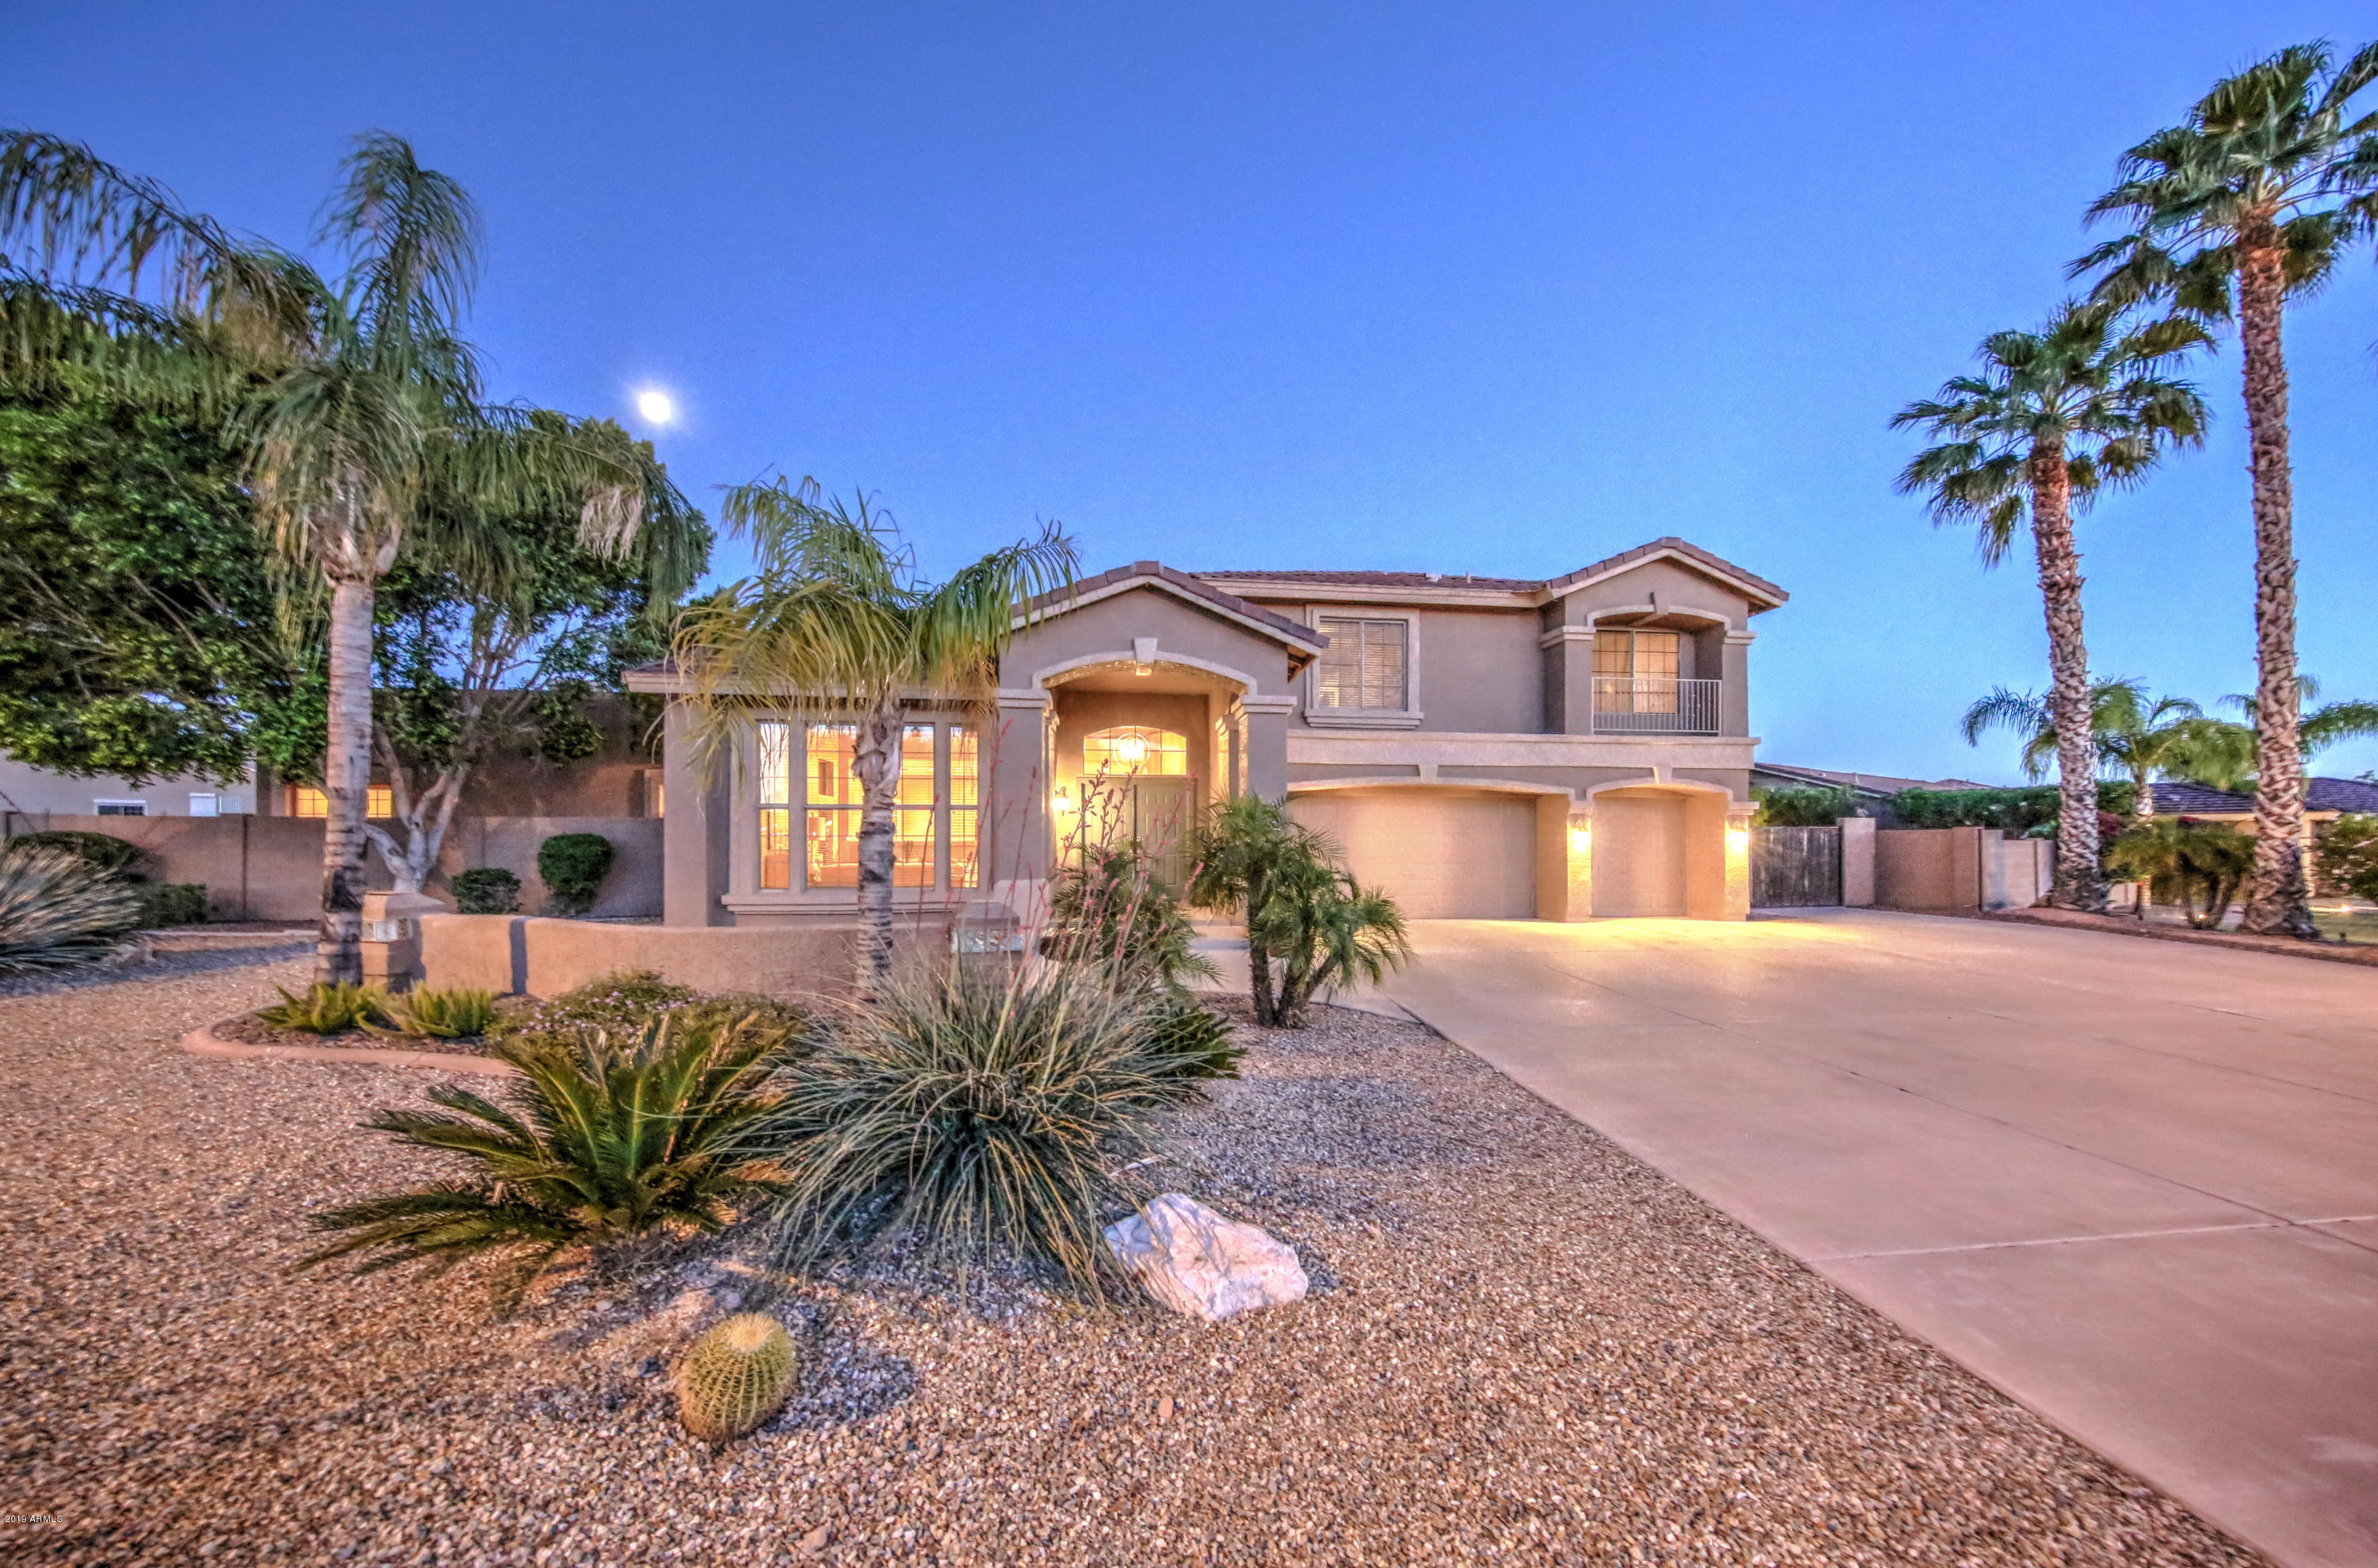 Photo of 2315 N Avoca Street, Mesa, AZ 85207